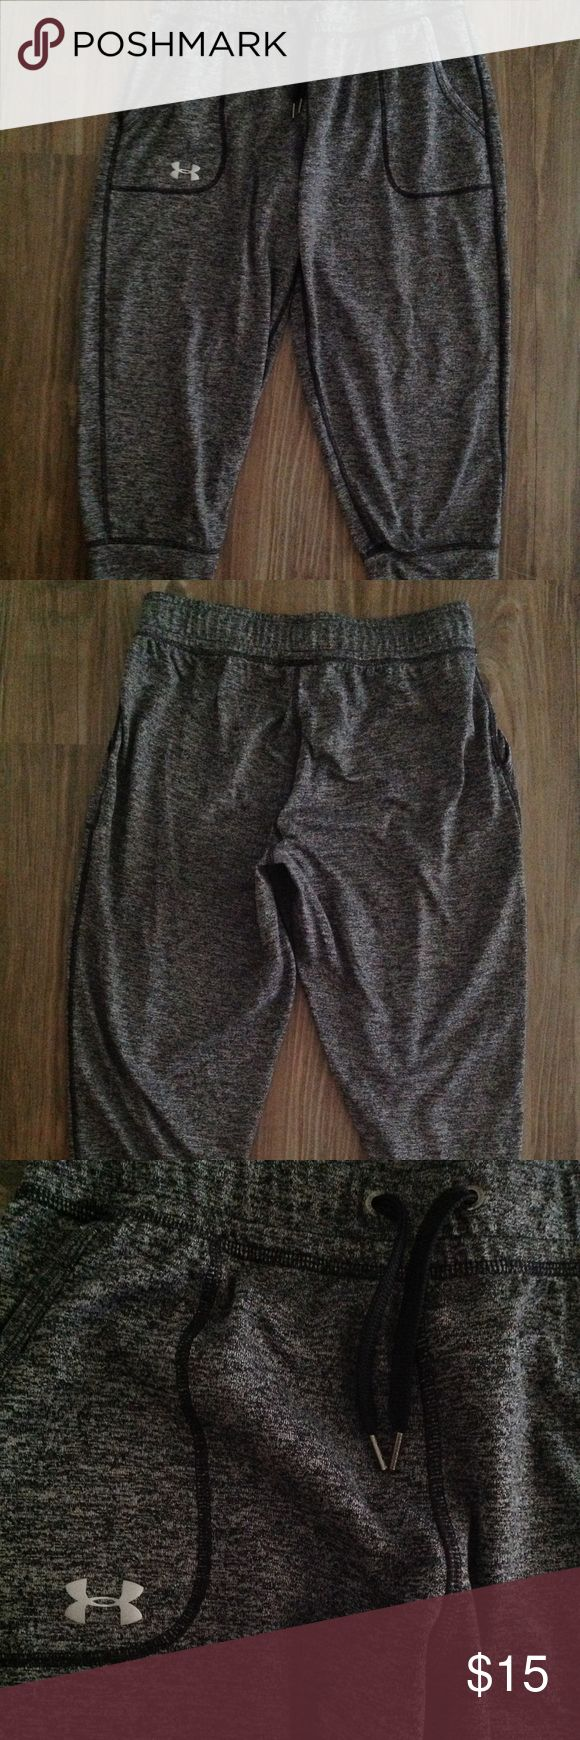 Under Armour Pants These heather grey soft pants are fabulous for multiple uses depending upon your style.  Comfy running, lifting, or simply lounging around.  Metal grommets and string ends.  EUC. Under Armour Pants Track Pants & Joggers